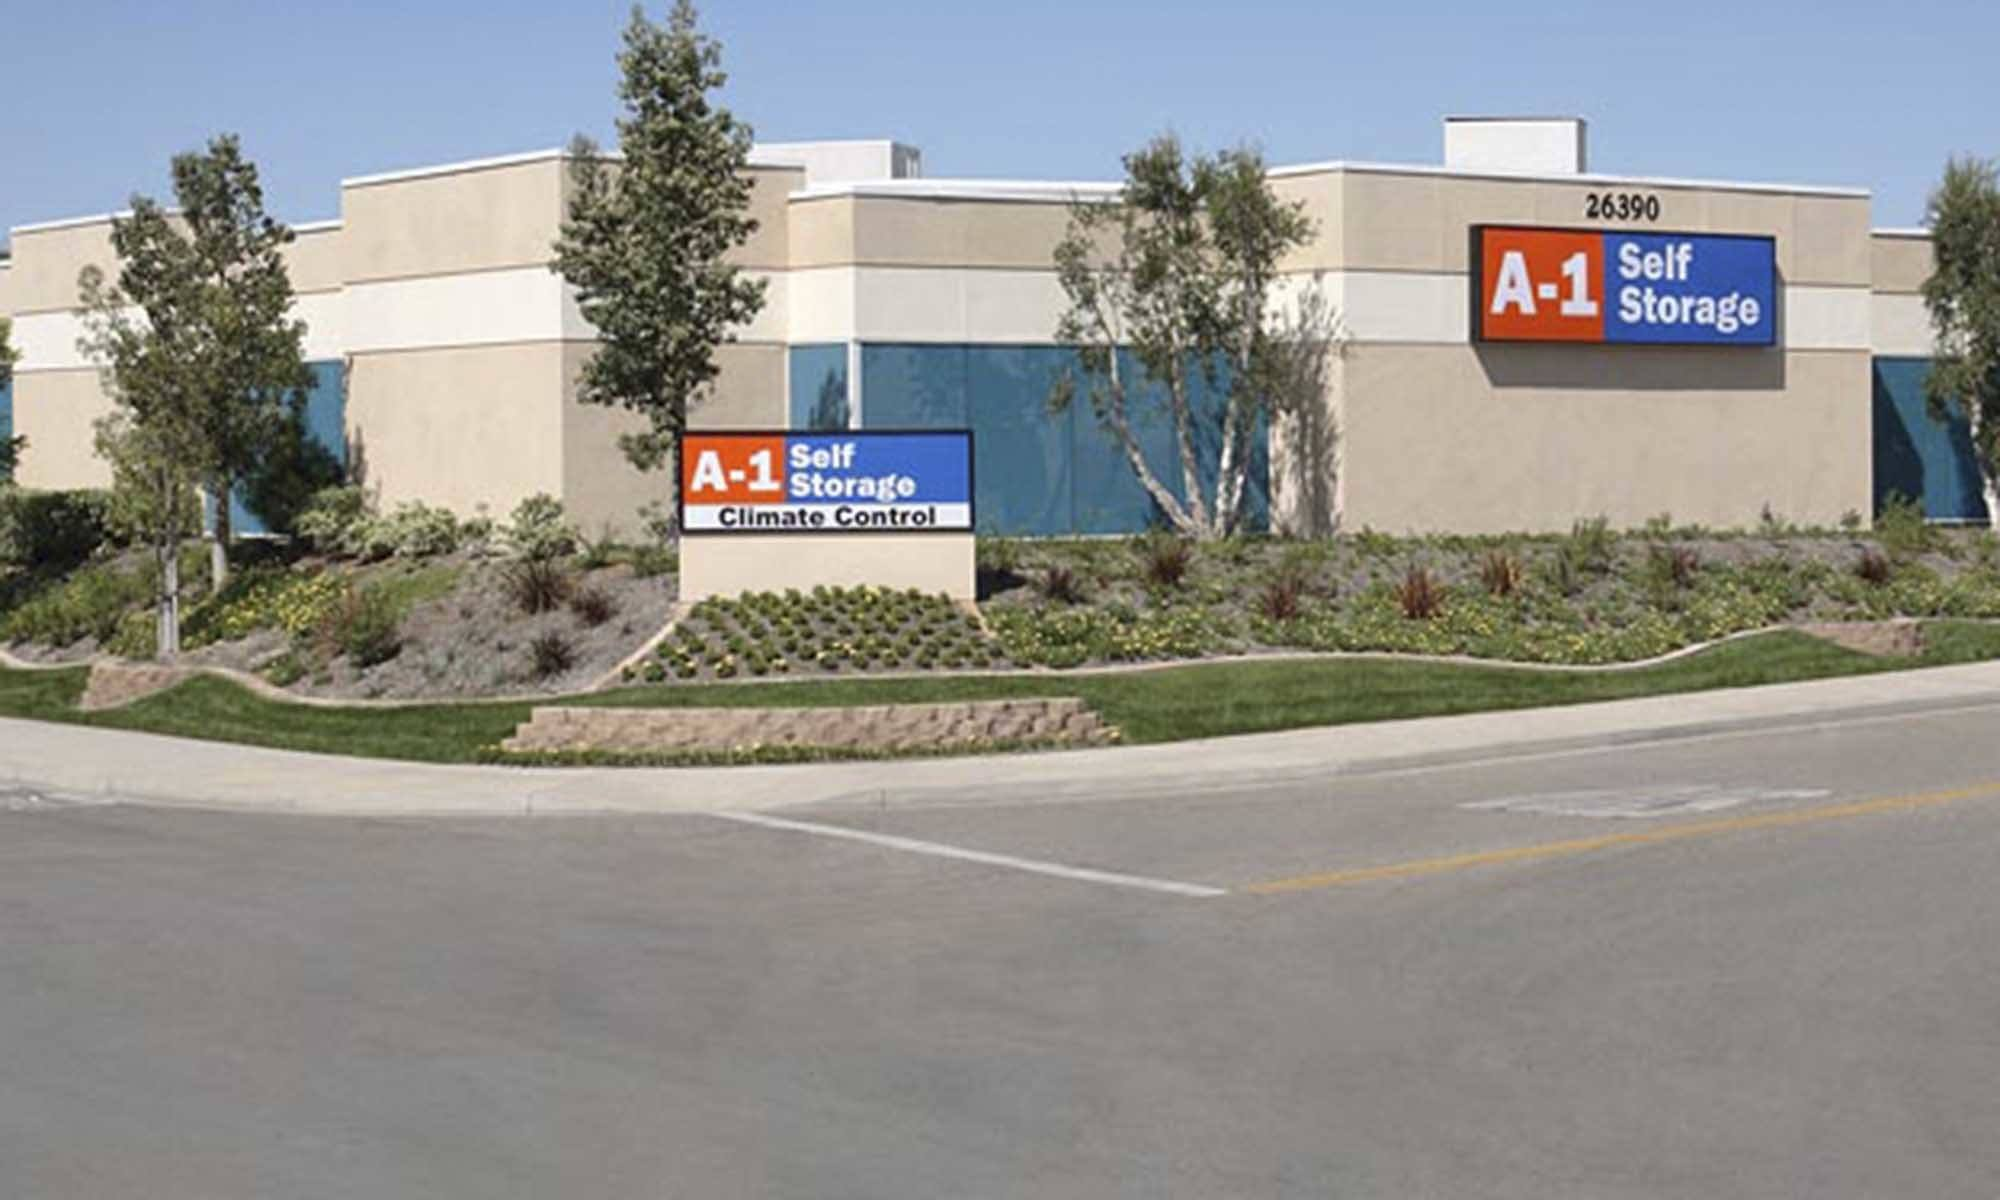 Self storage in Lake Forest CA